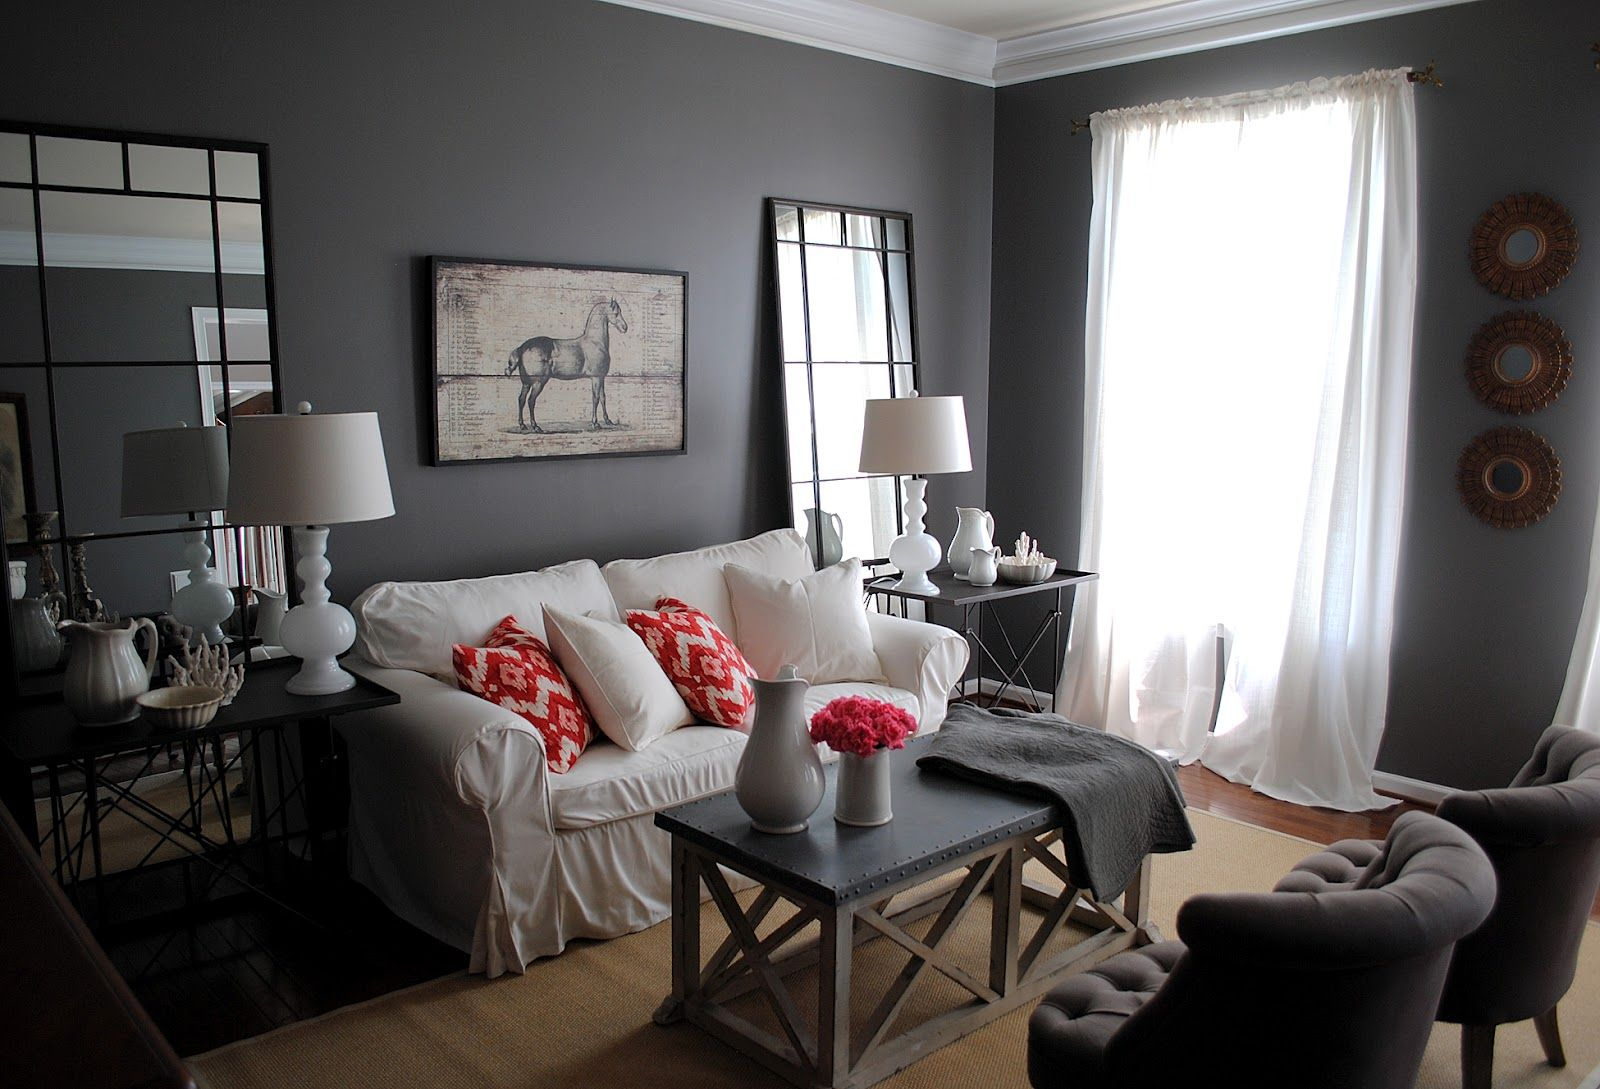 10 images about Paint my walls on Pinterest Woodland creatures Grey and  Gold polka dots. Grey Paint Bedroom